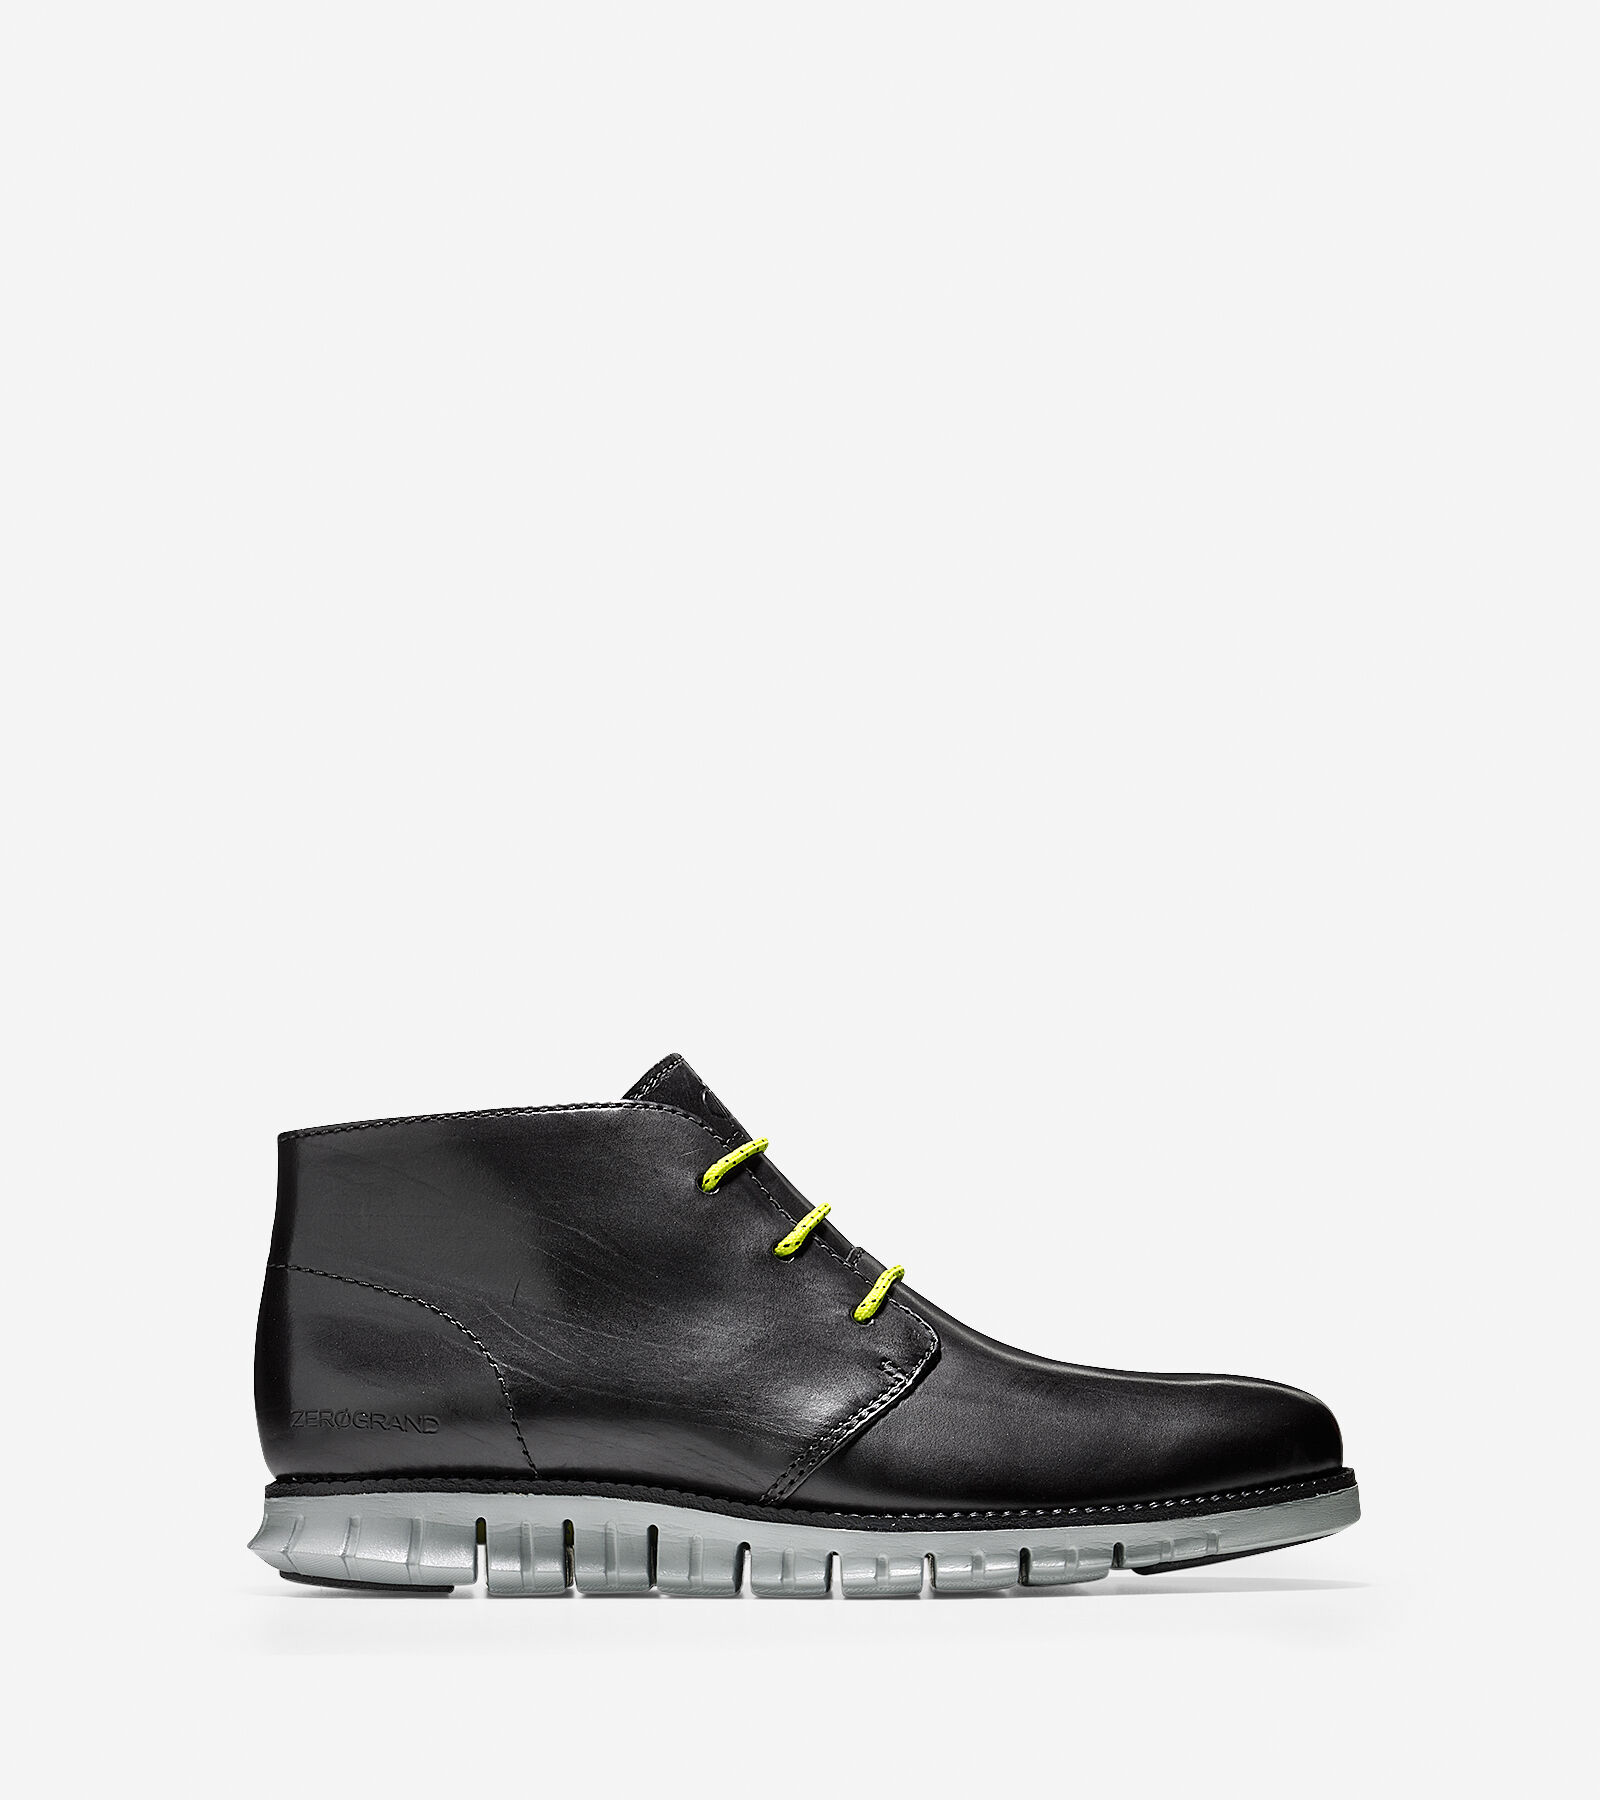 Latest Cole Haan Zerogrand.Chka.Btie Round Toe Suede Chukka Boot Black For Women Outlet